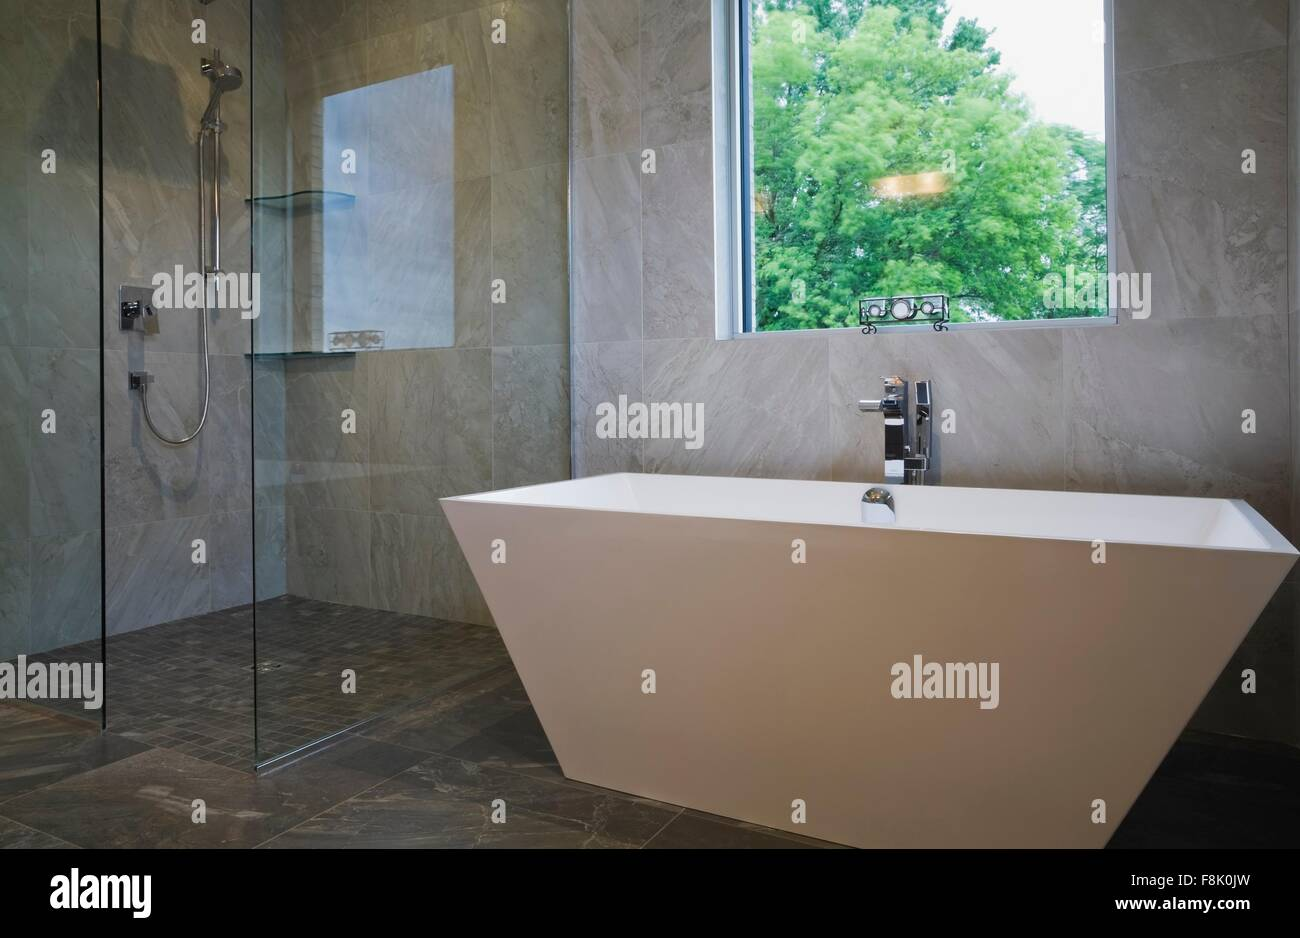 Modern bathroom with free standing bath tub and glass fronted shower cubicle - Stock Image